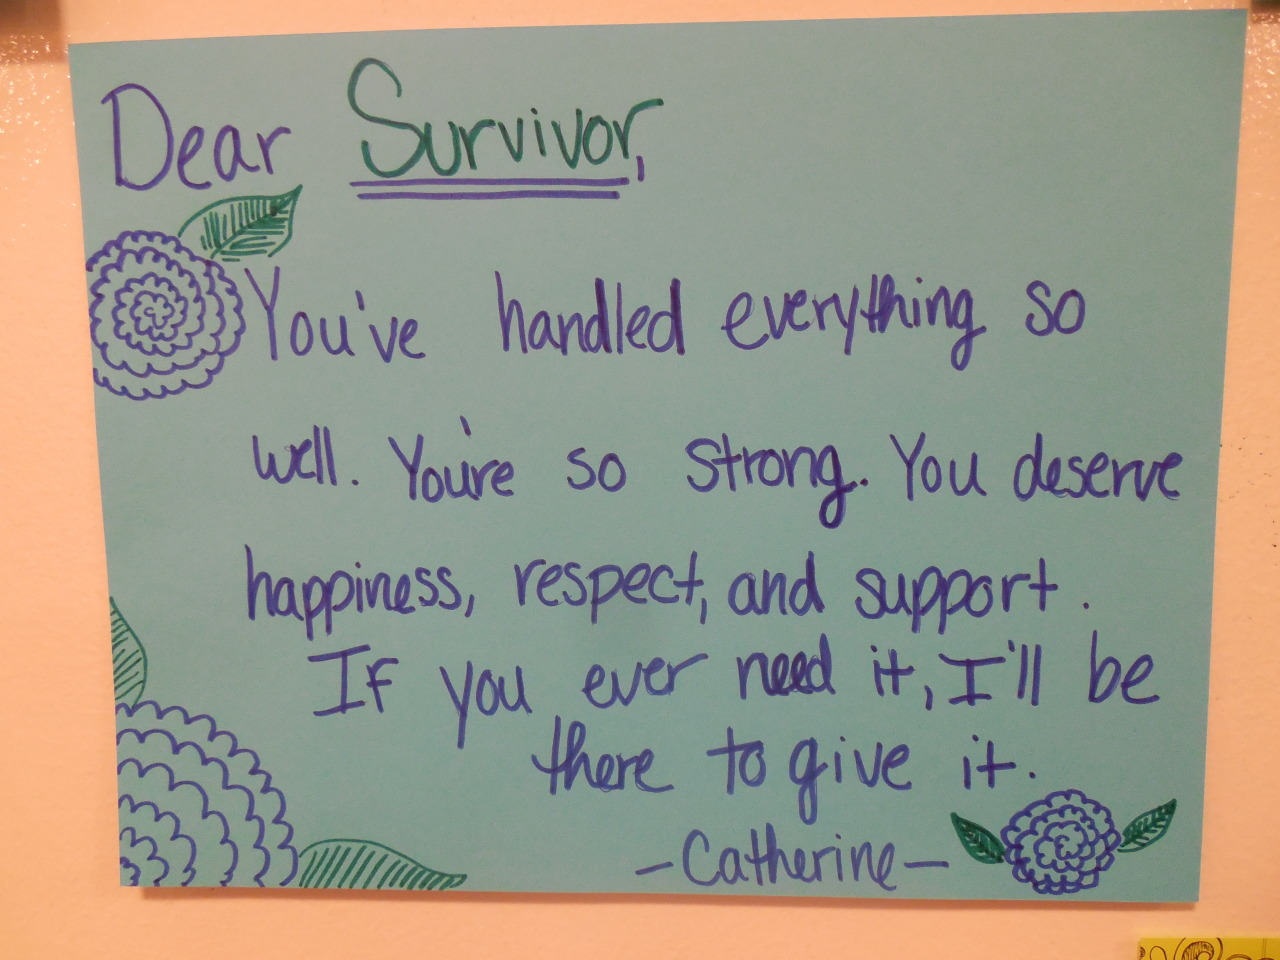 Dear Survivor,  You've handled everything so well. You're so strong. You deserve happiness, respect, and support. If you ever need it, I'll be there to give it.  -Catherine-